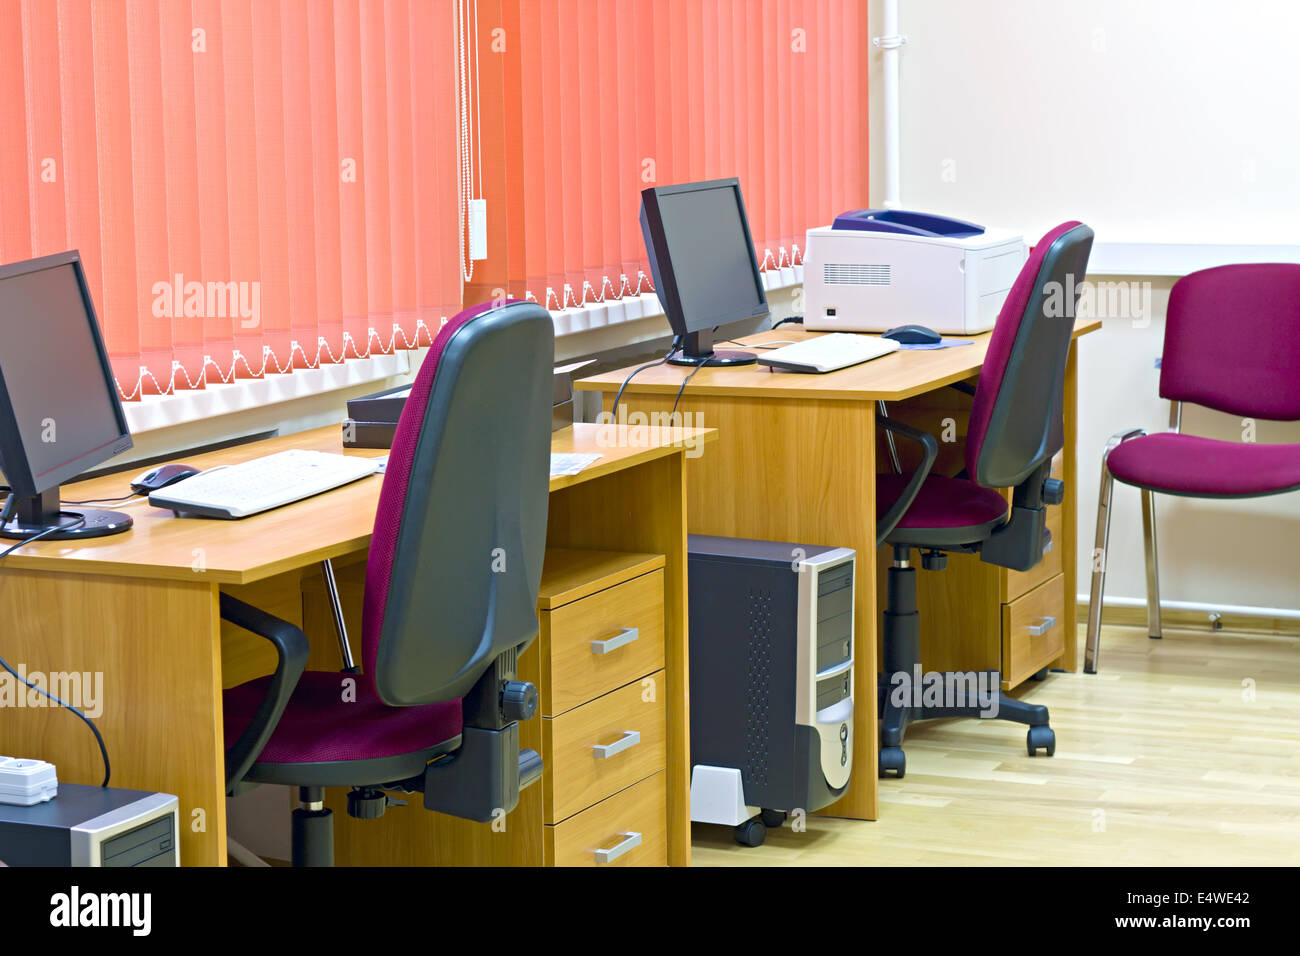 office interior with two jobs - Stock Image